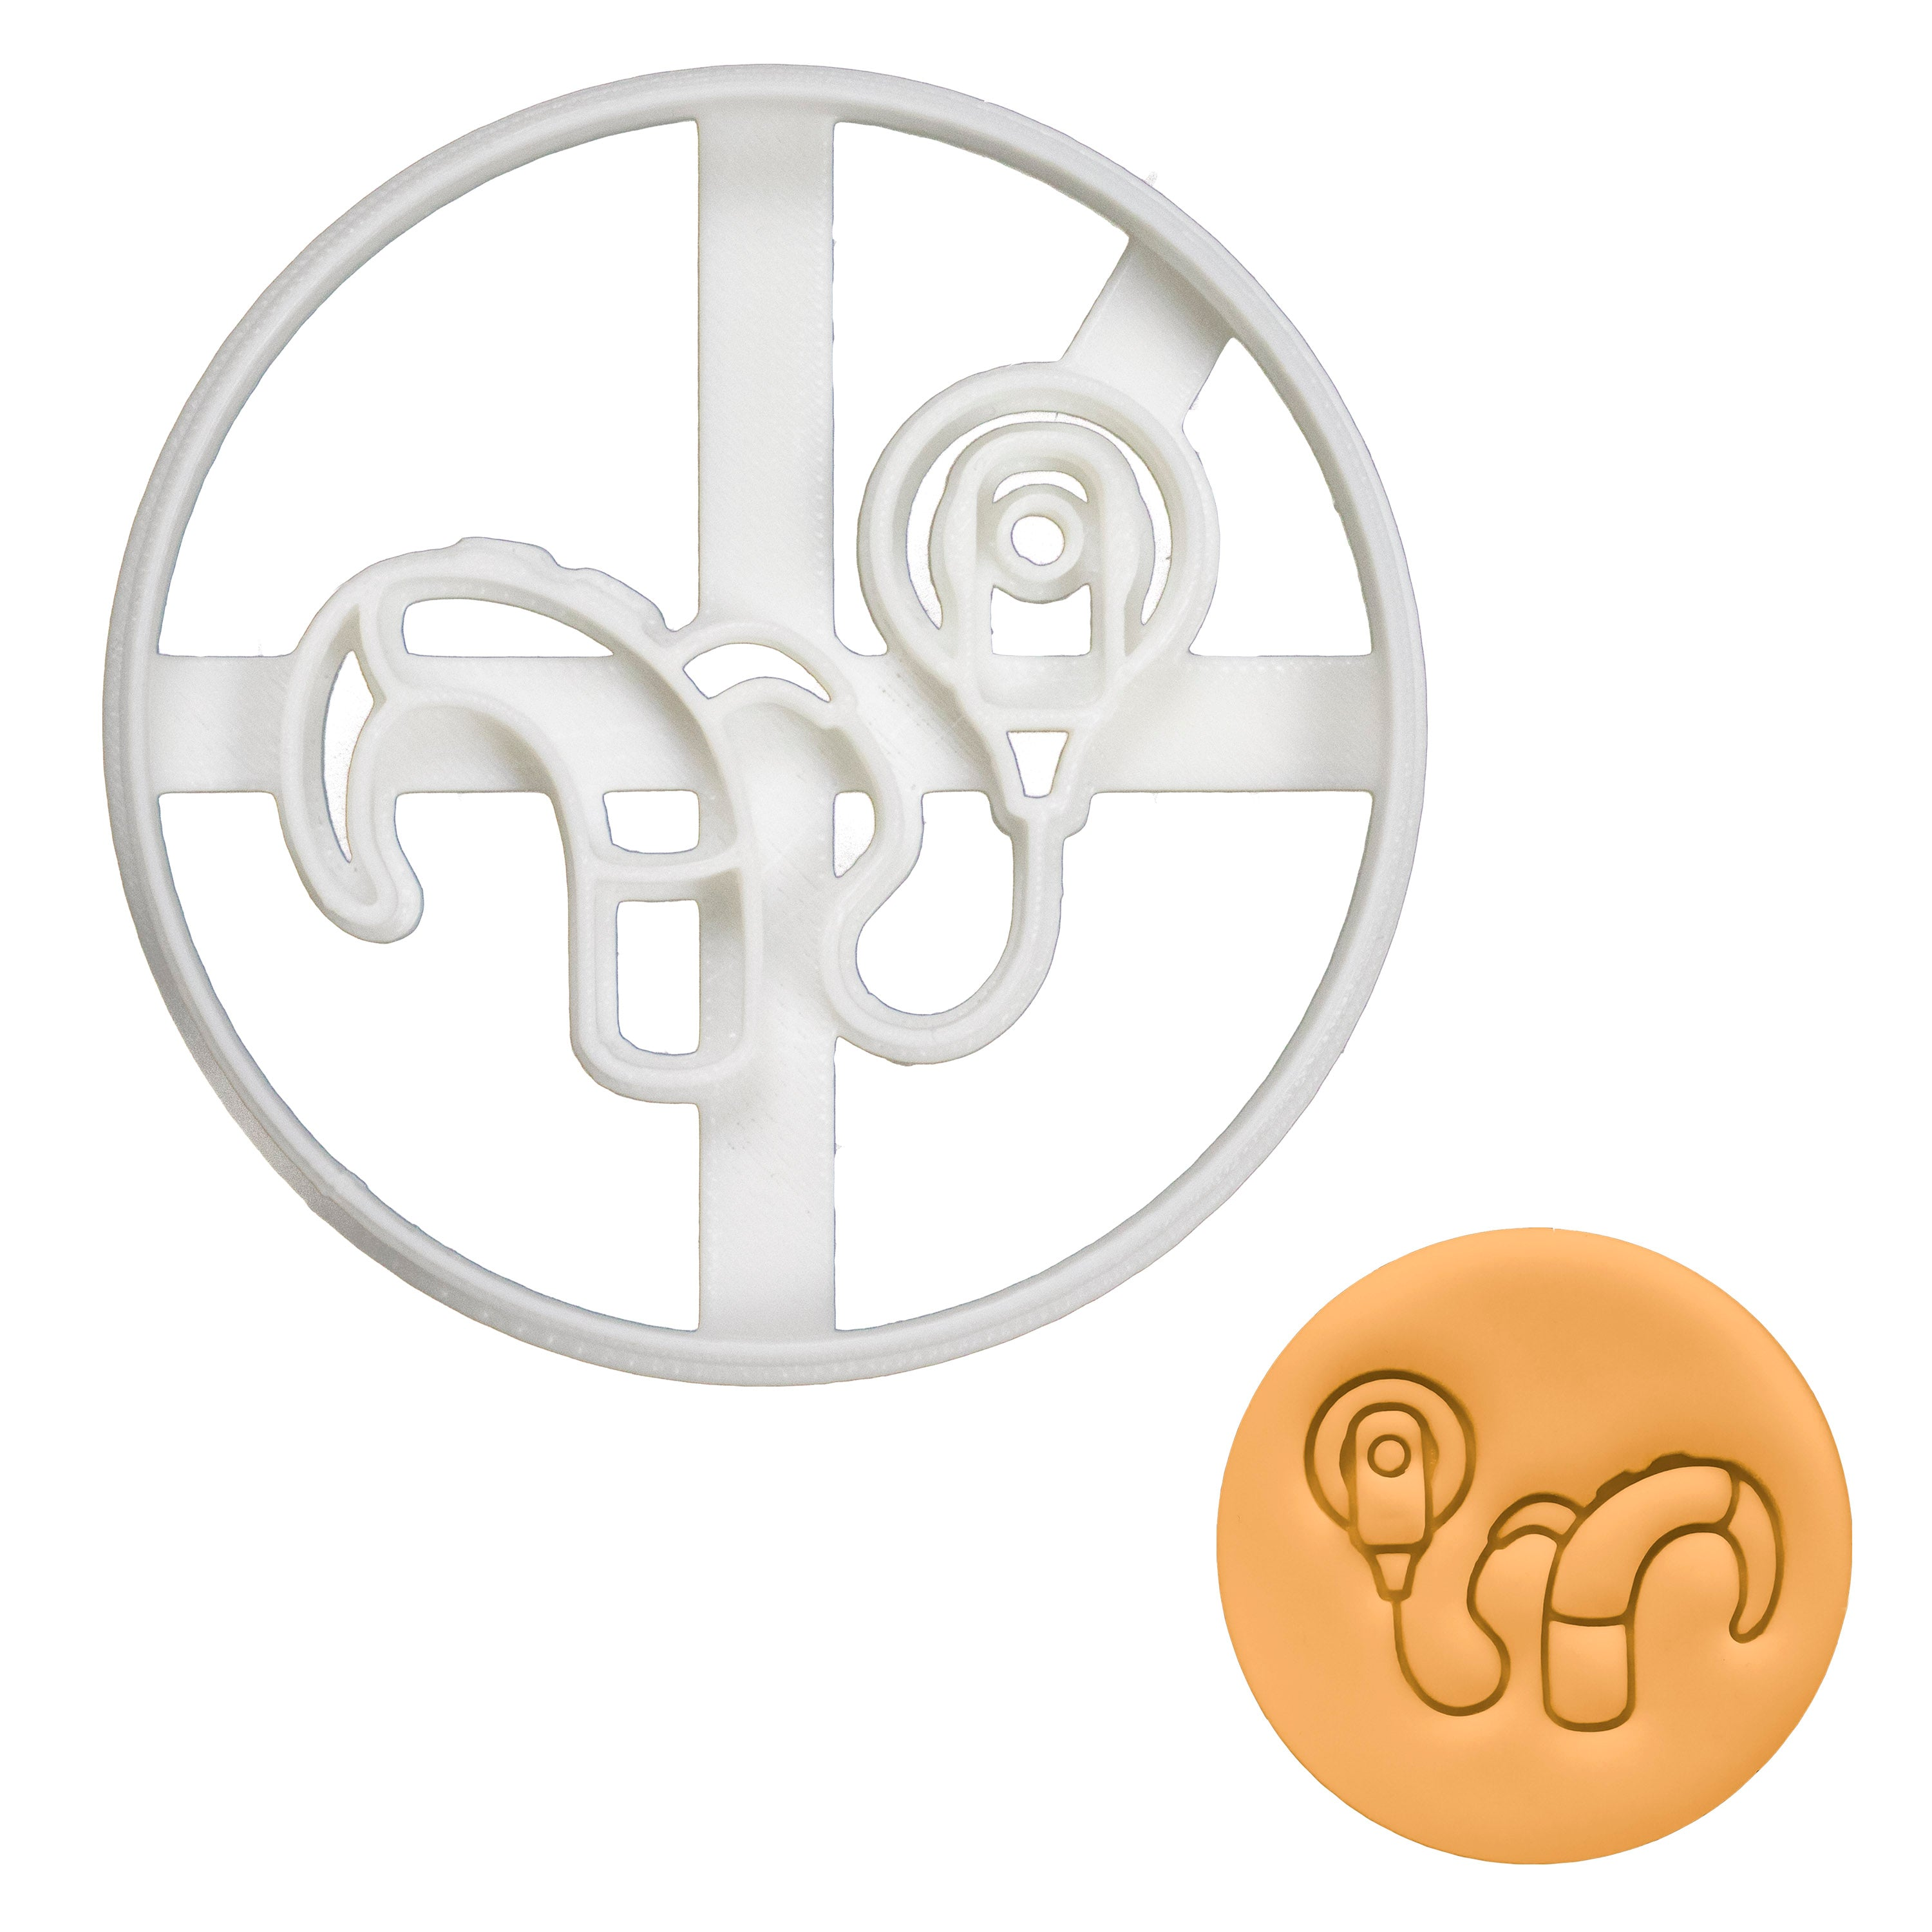 Cochlear Implant Transmitter Cookie Cutter